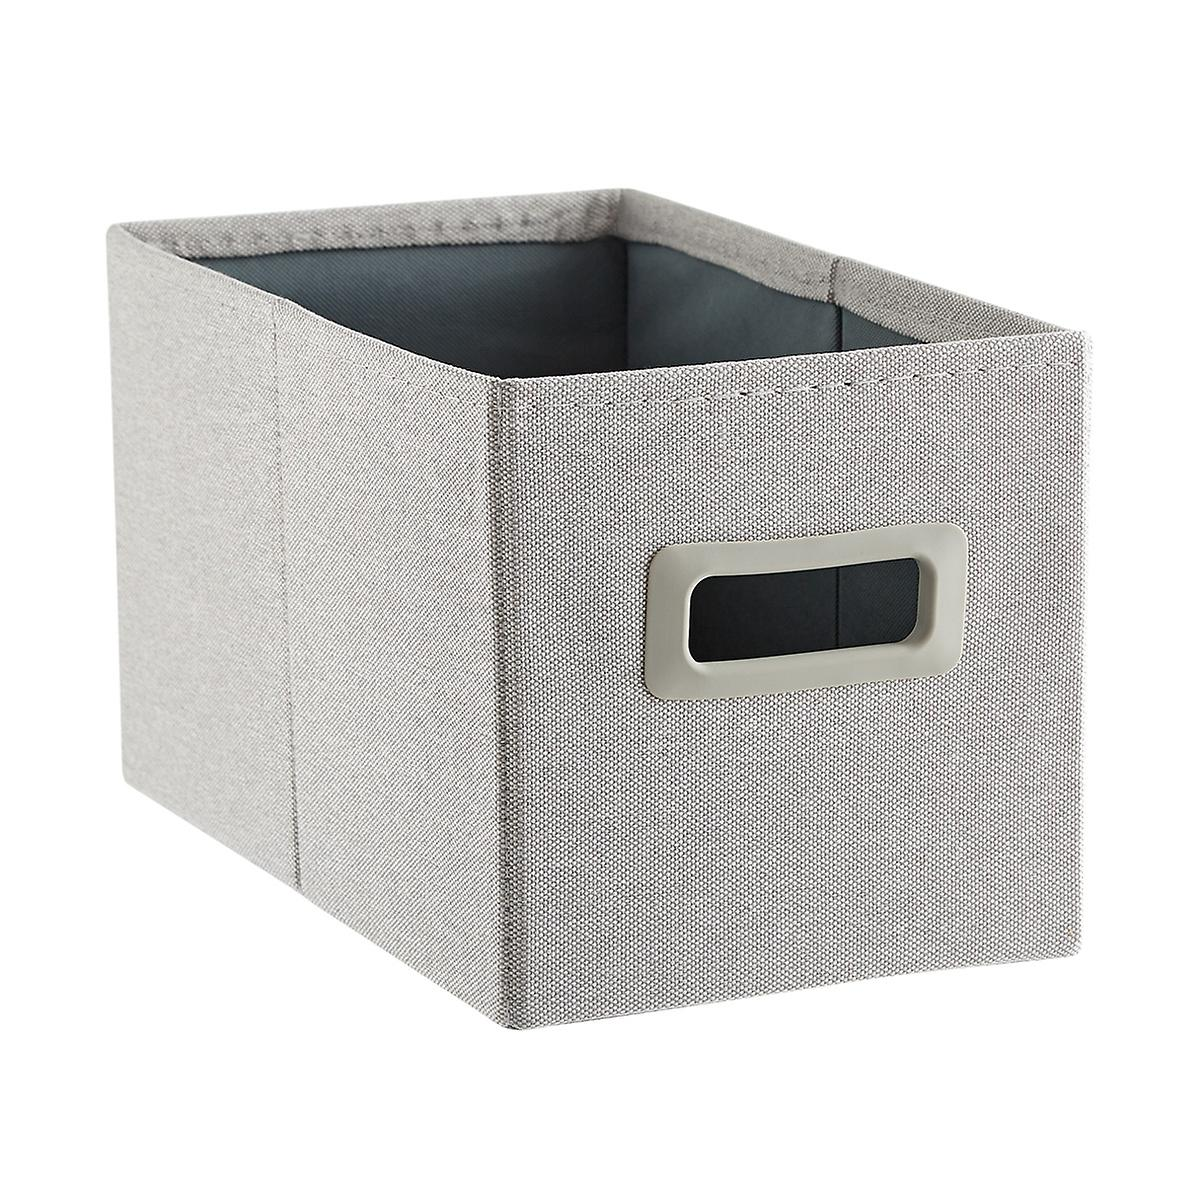 Light Grey Poppin 3x2 Storage Bin